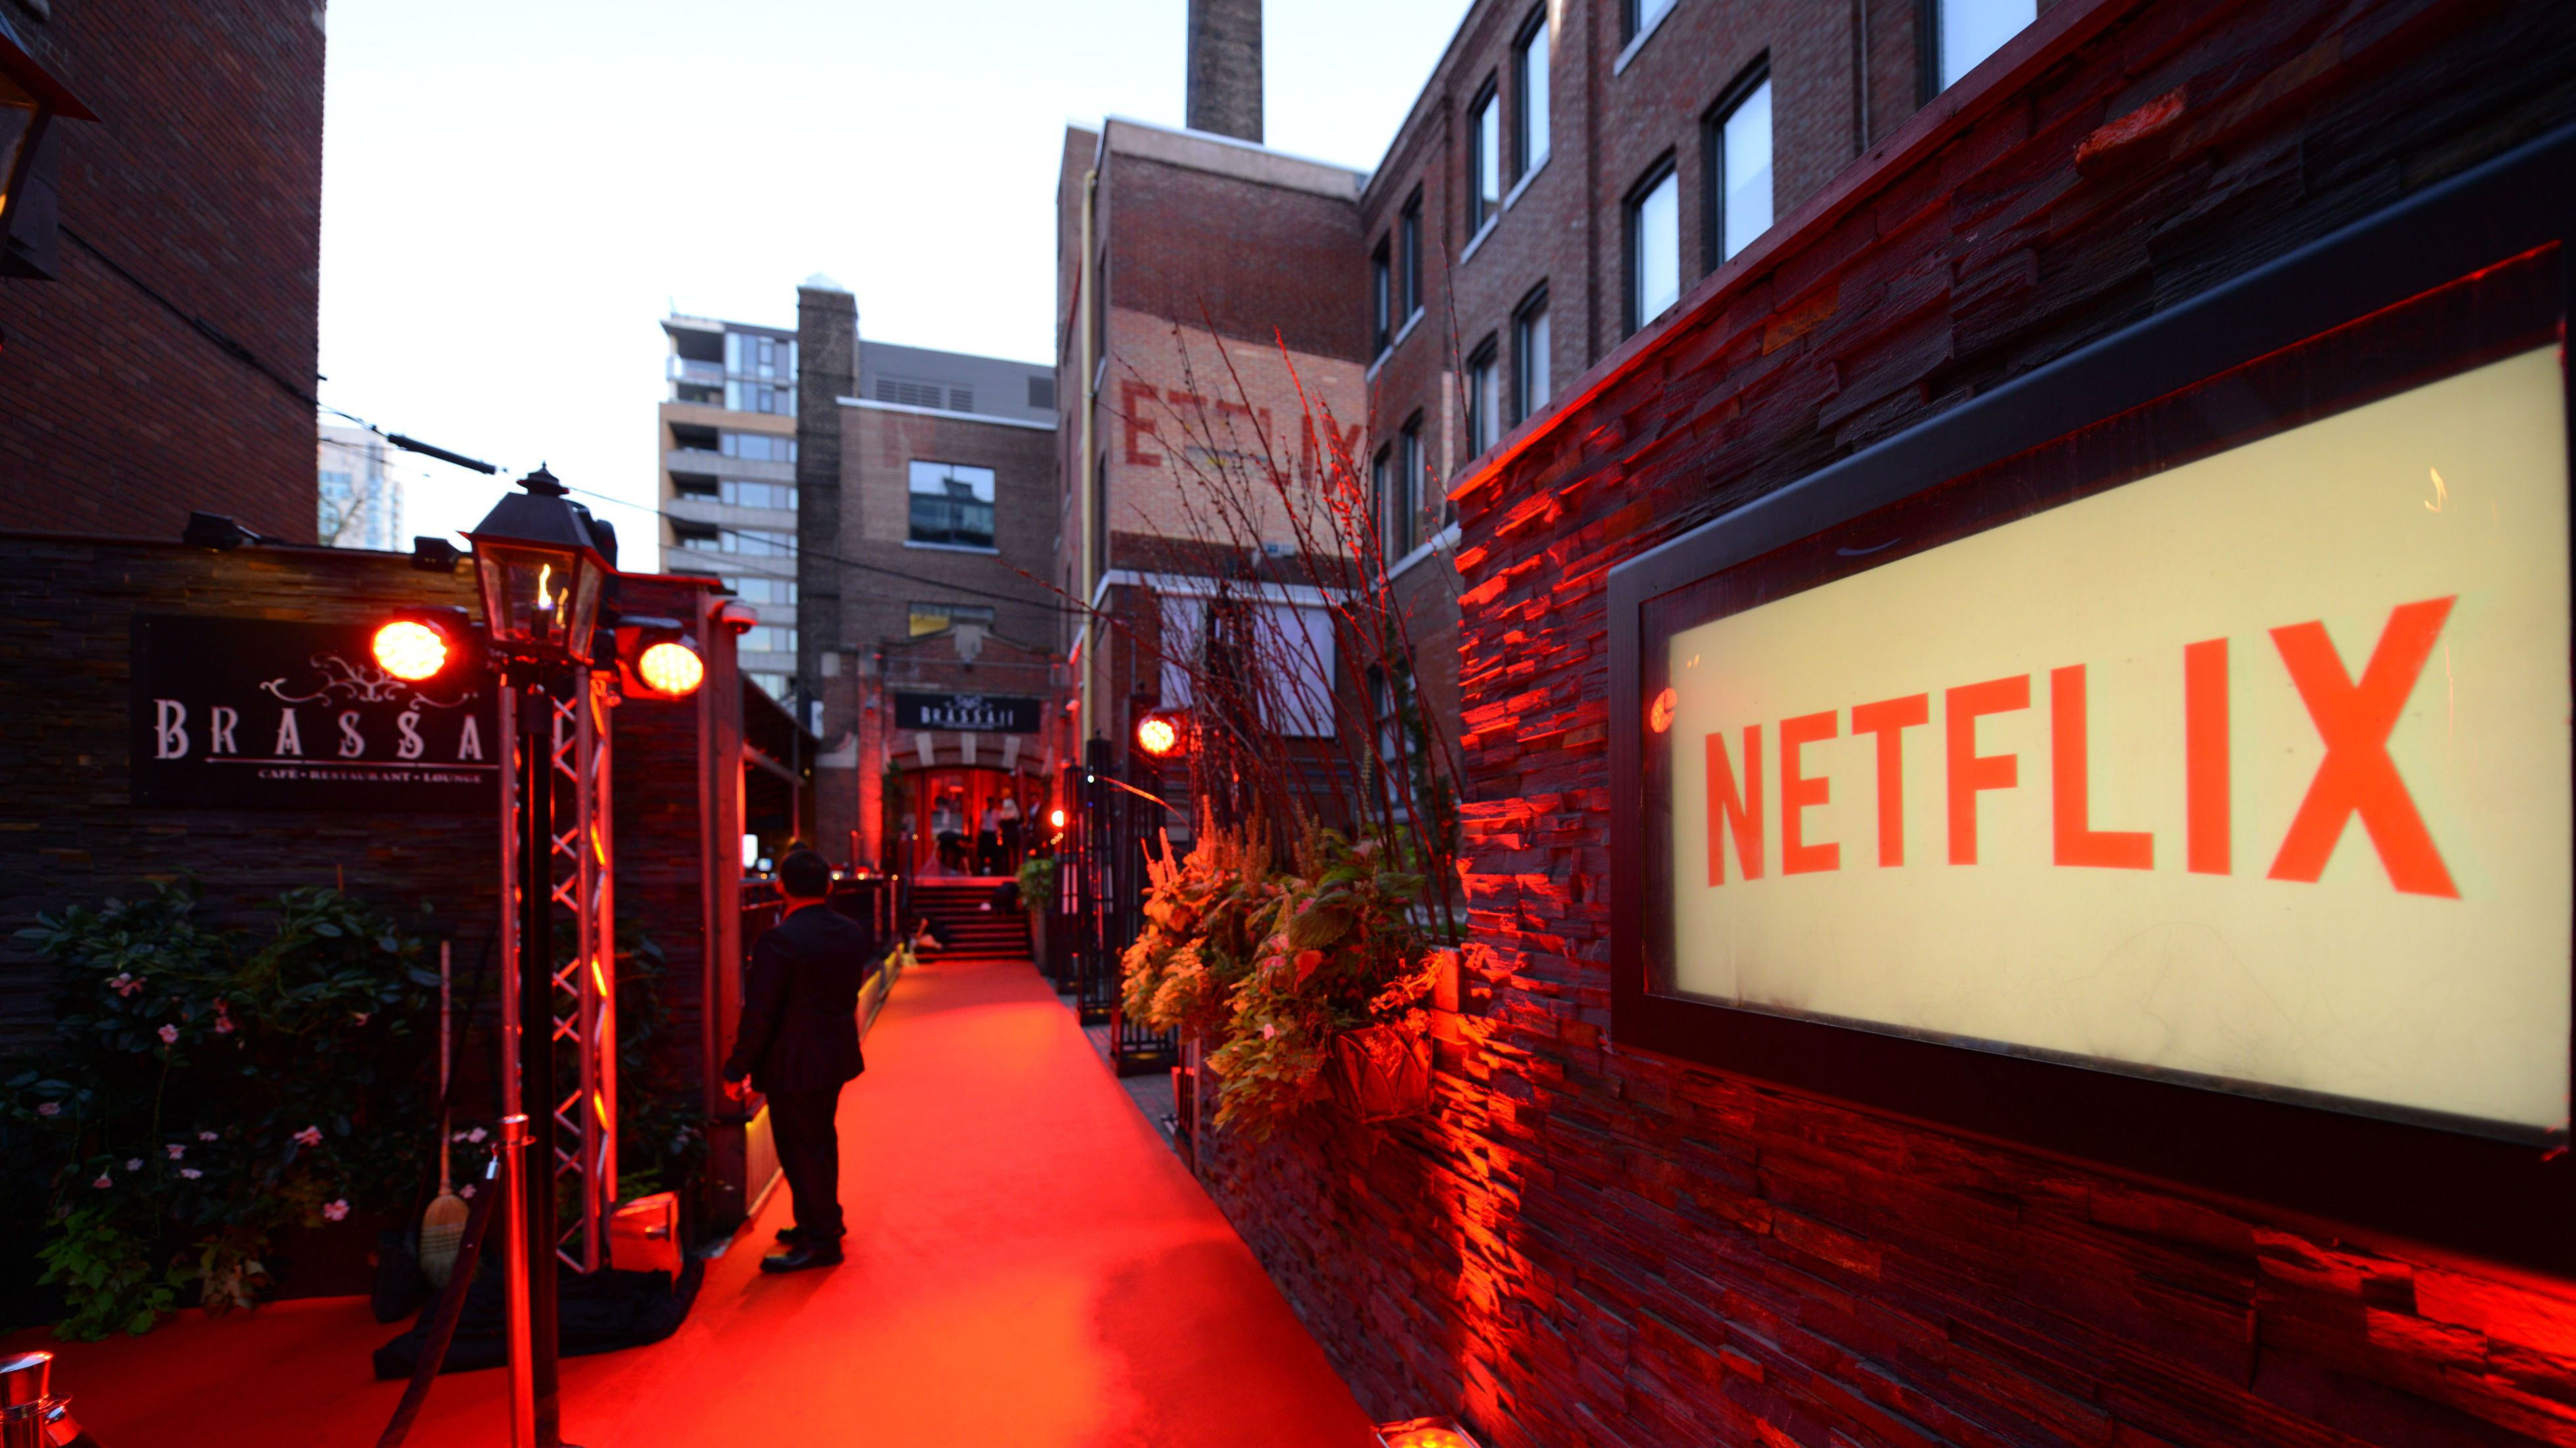 A general view of atmosphere seen at the Netflix Celebration of 2014 TIFF on Sunday, Sep. 7, 2014, in Toronto. (Photo by Arthur Mola/Invision for Netflix/AP Images)